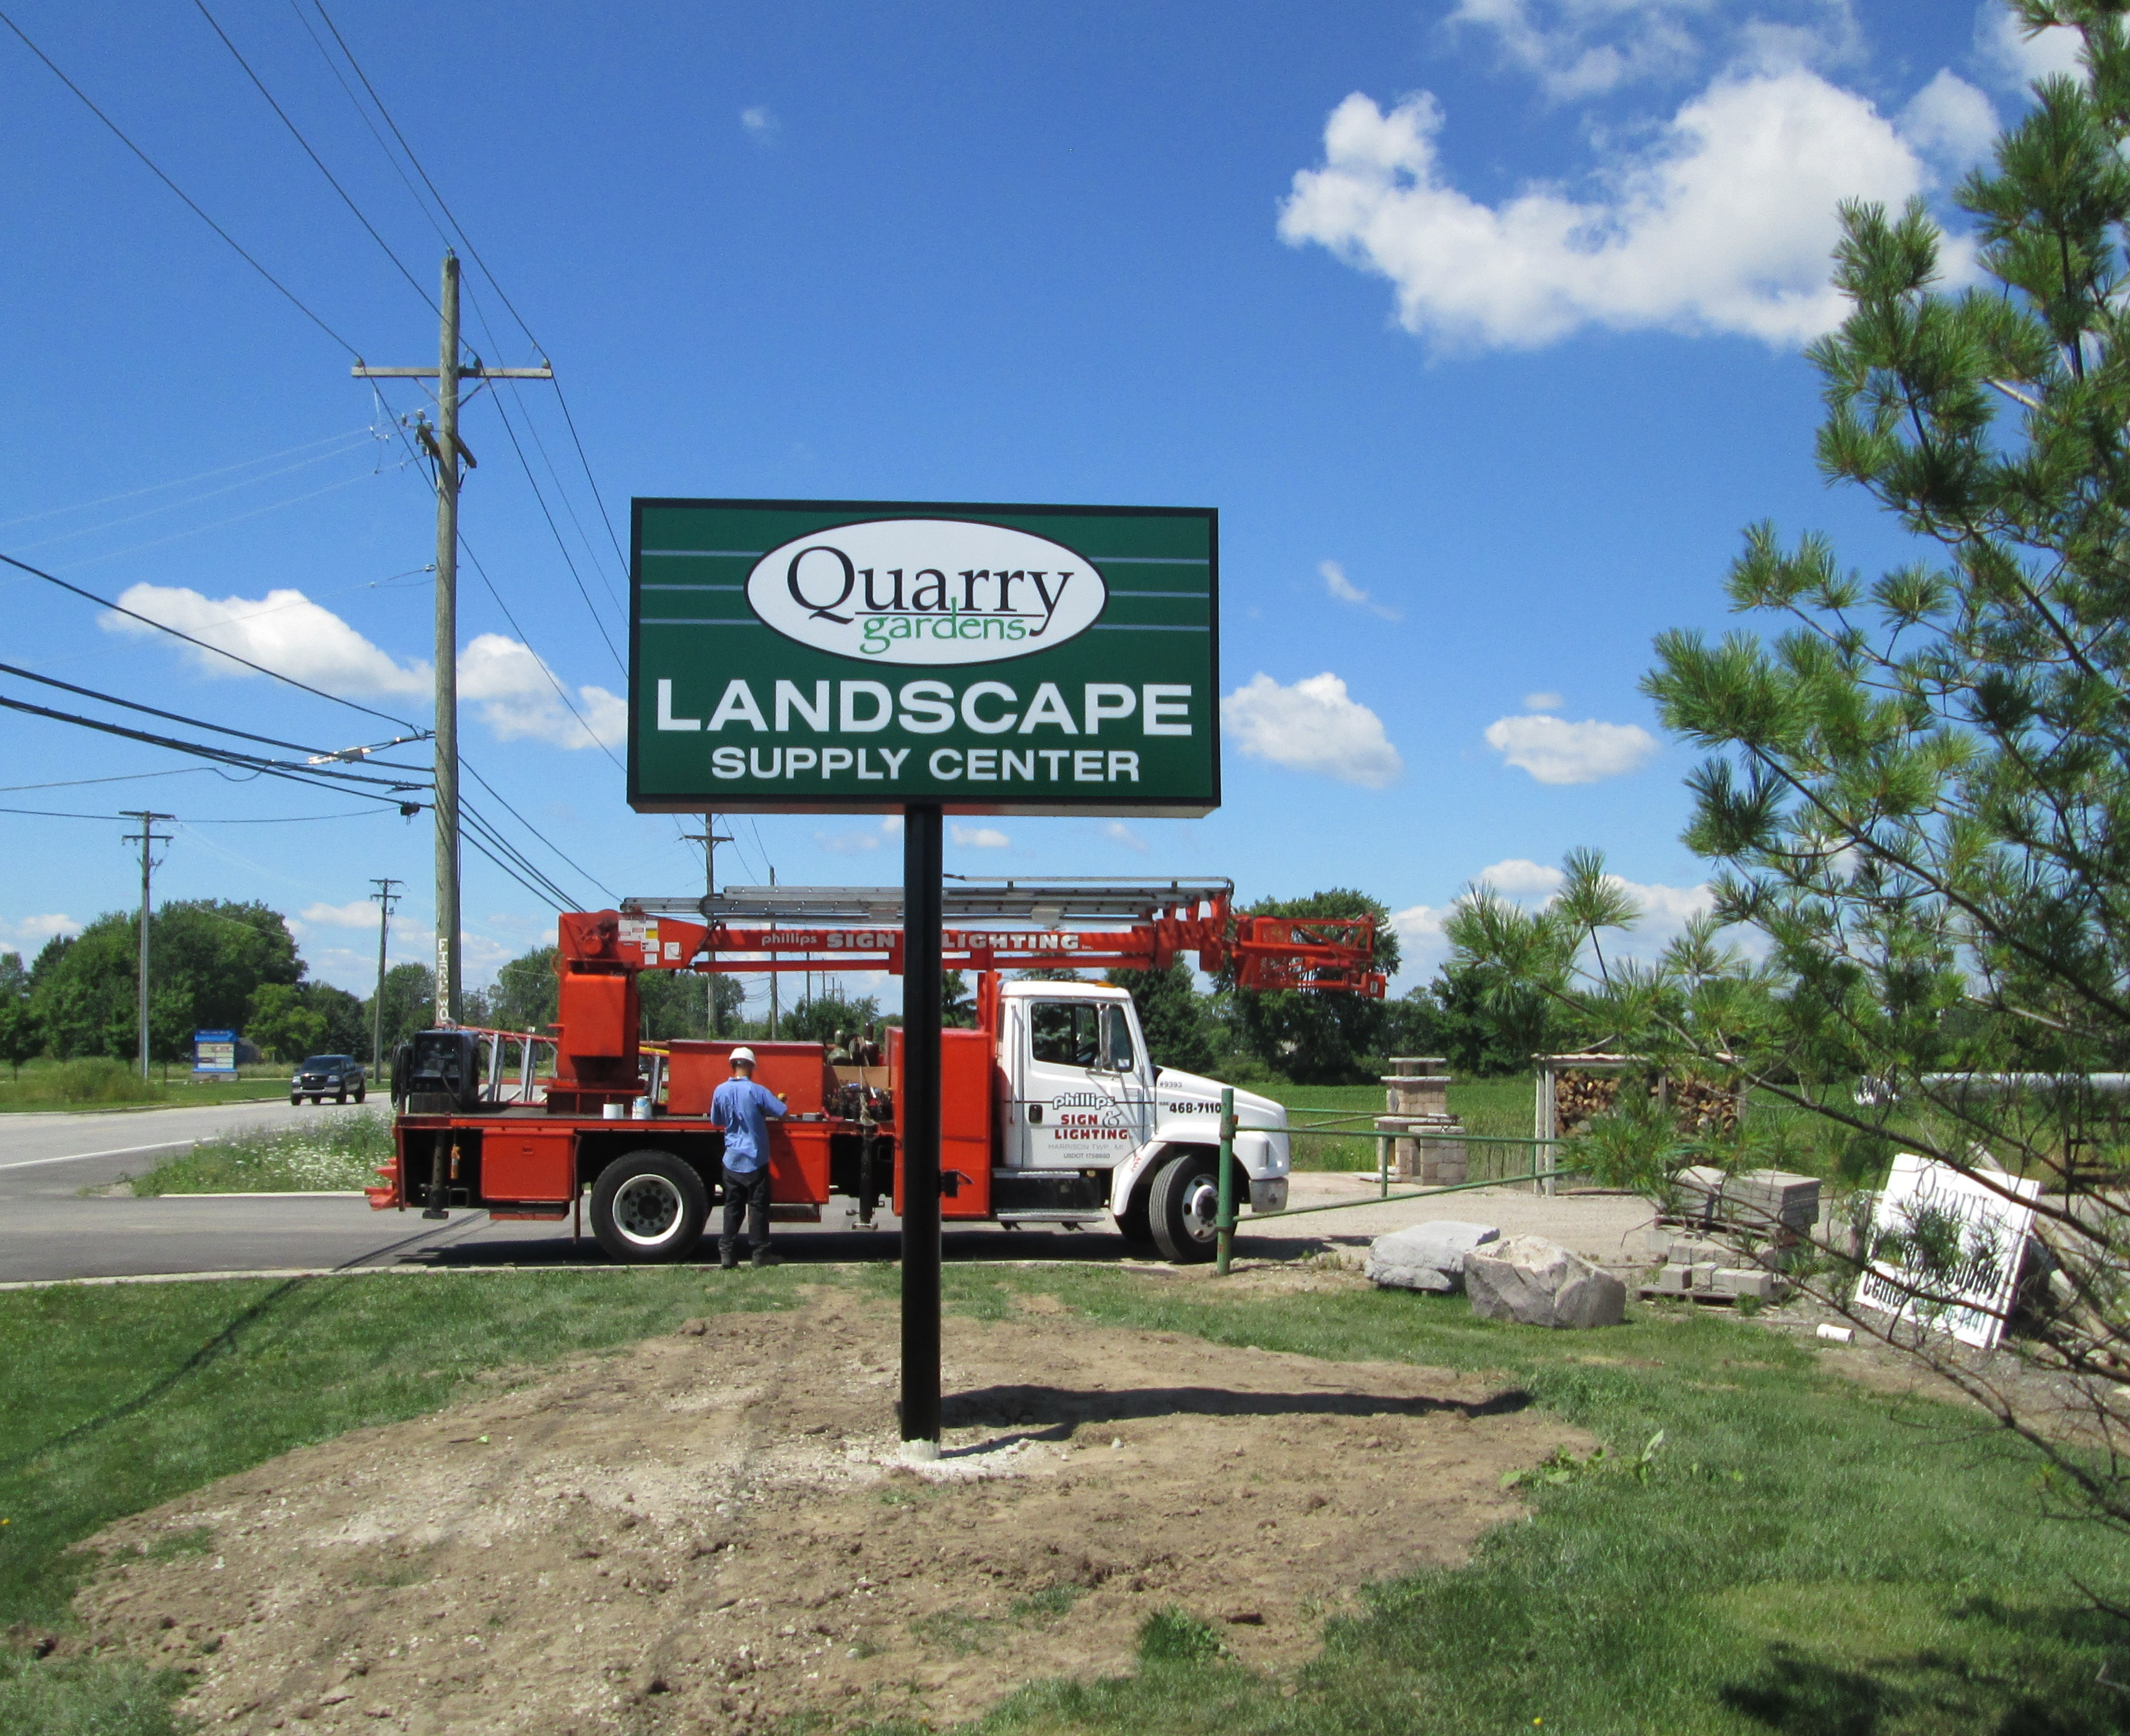 Quarry Gardens Landscape Supply Center - Casco